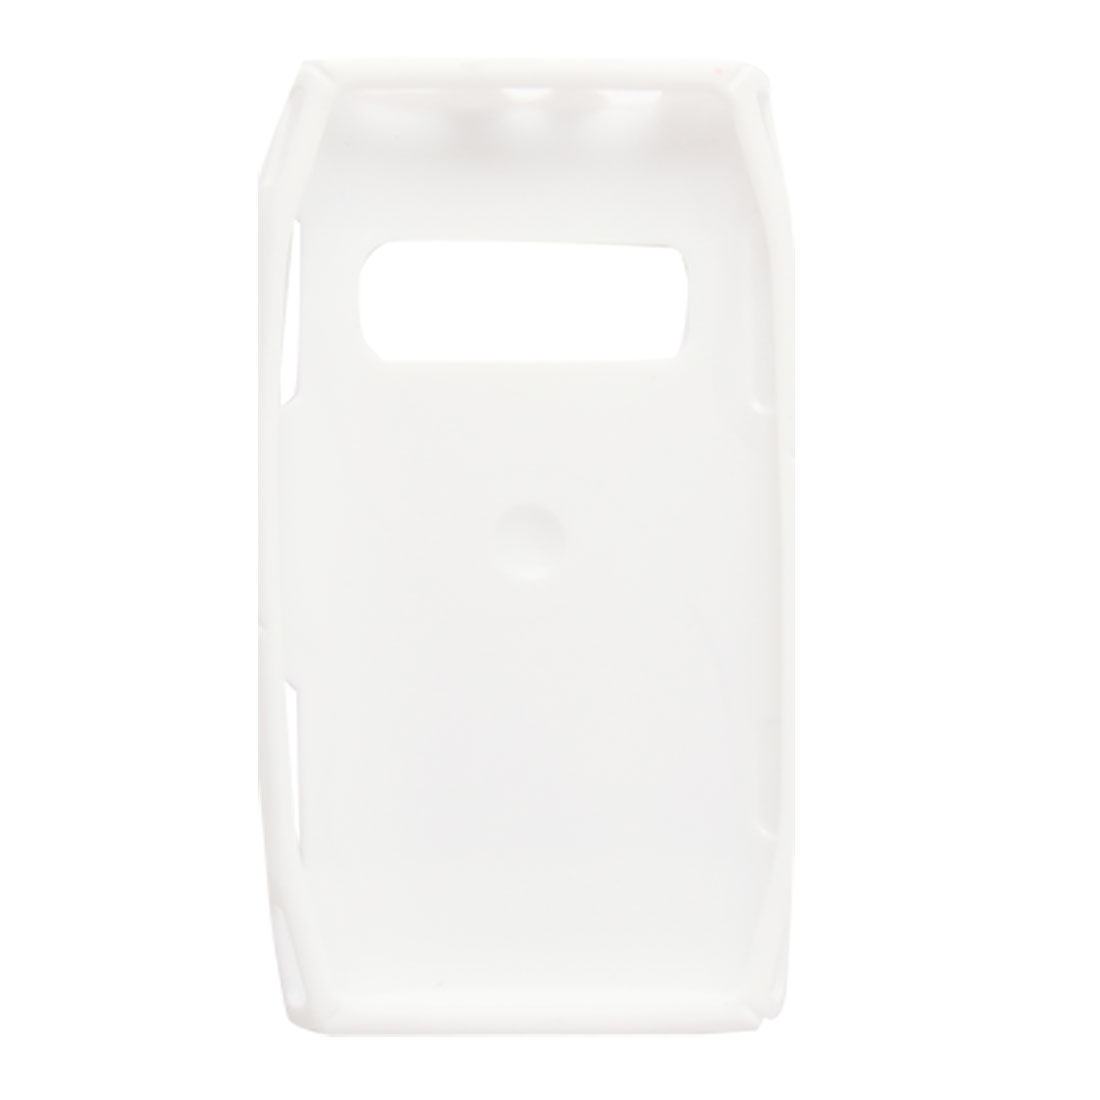 White Soft Plastic Textured Case Protector for Nokia X7